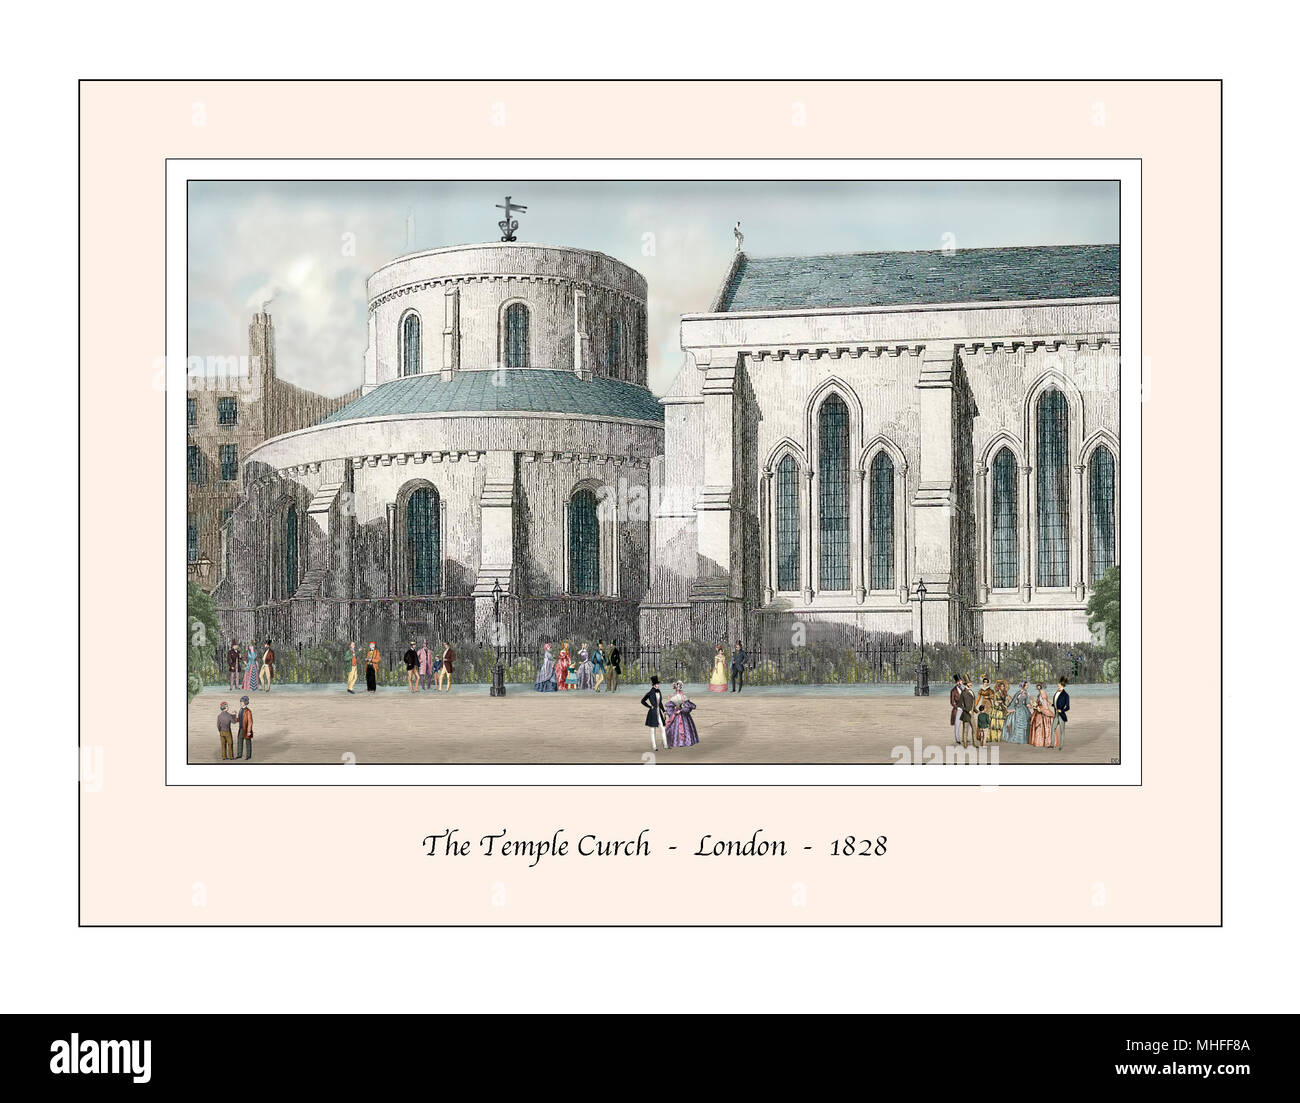 Temple Church London Original Design based on a 19th century Engraving - Stock Image